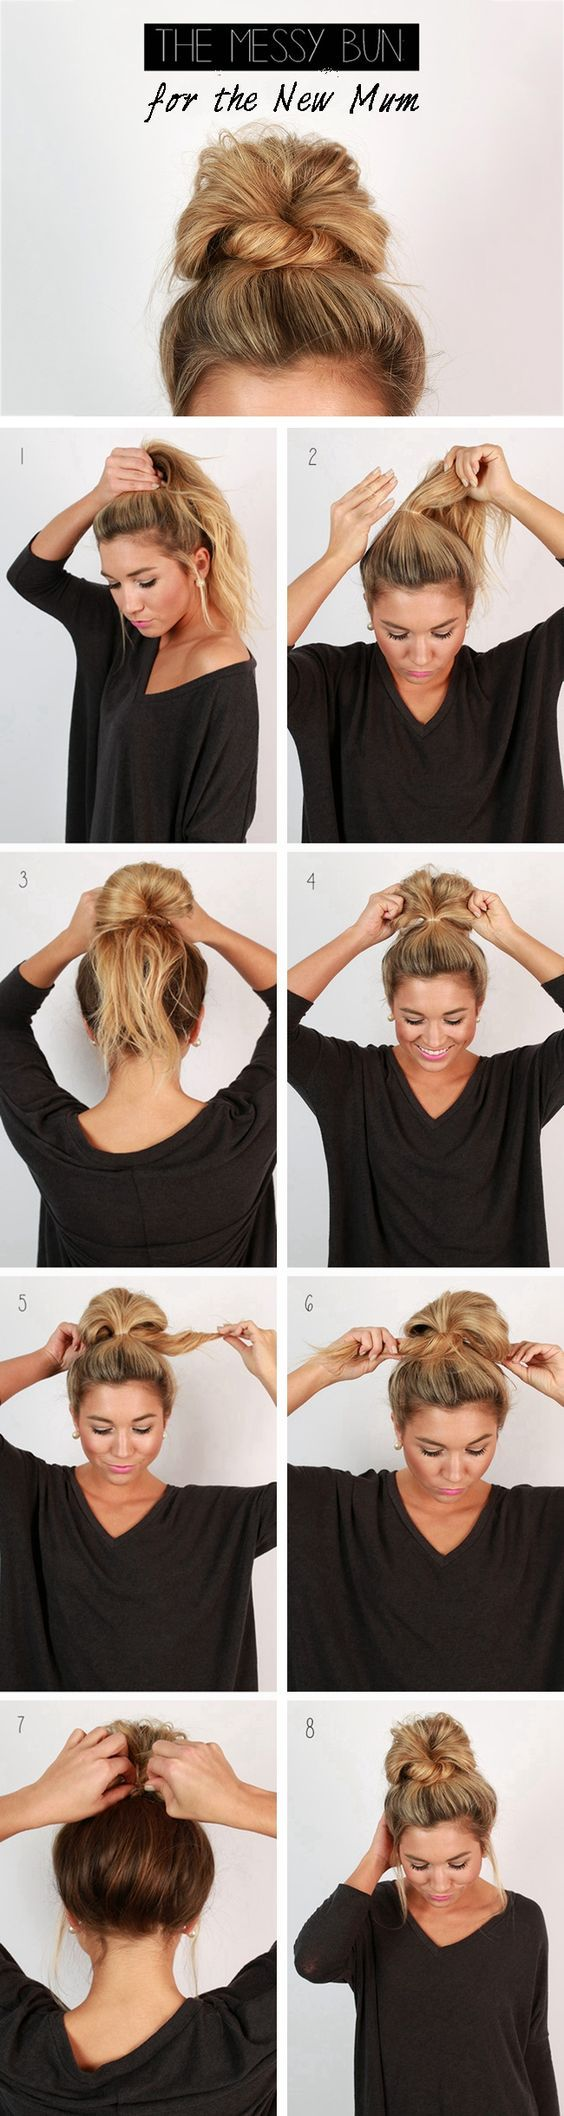 Superb 1000 Ideas About Super Easy Hairstyles On Pinterest Easy Short Hairstyles For Black Women Fulllsitofus